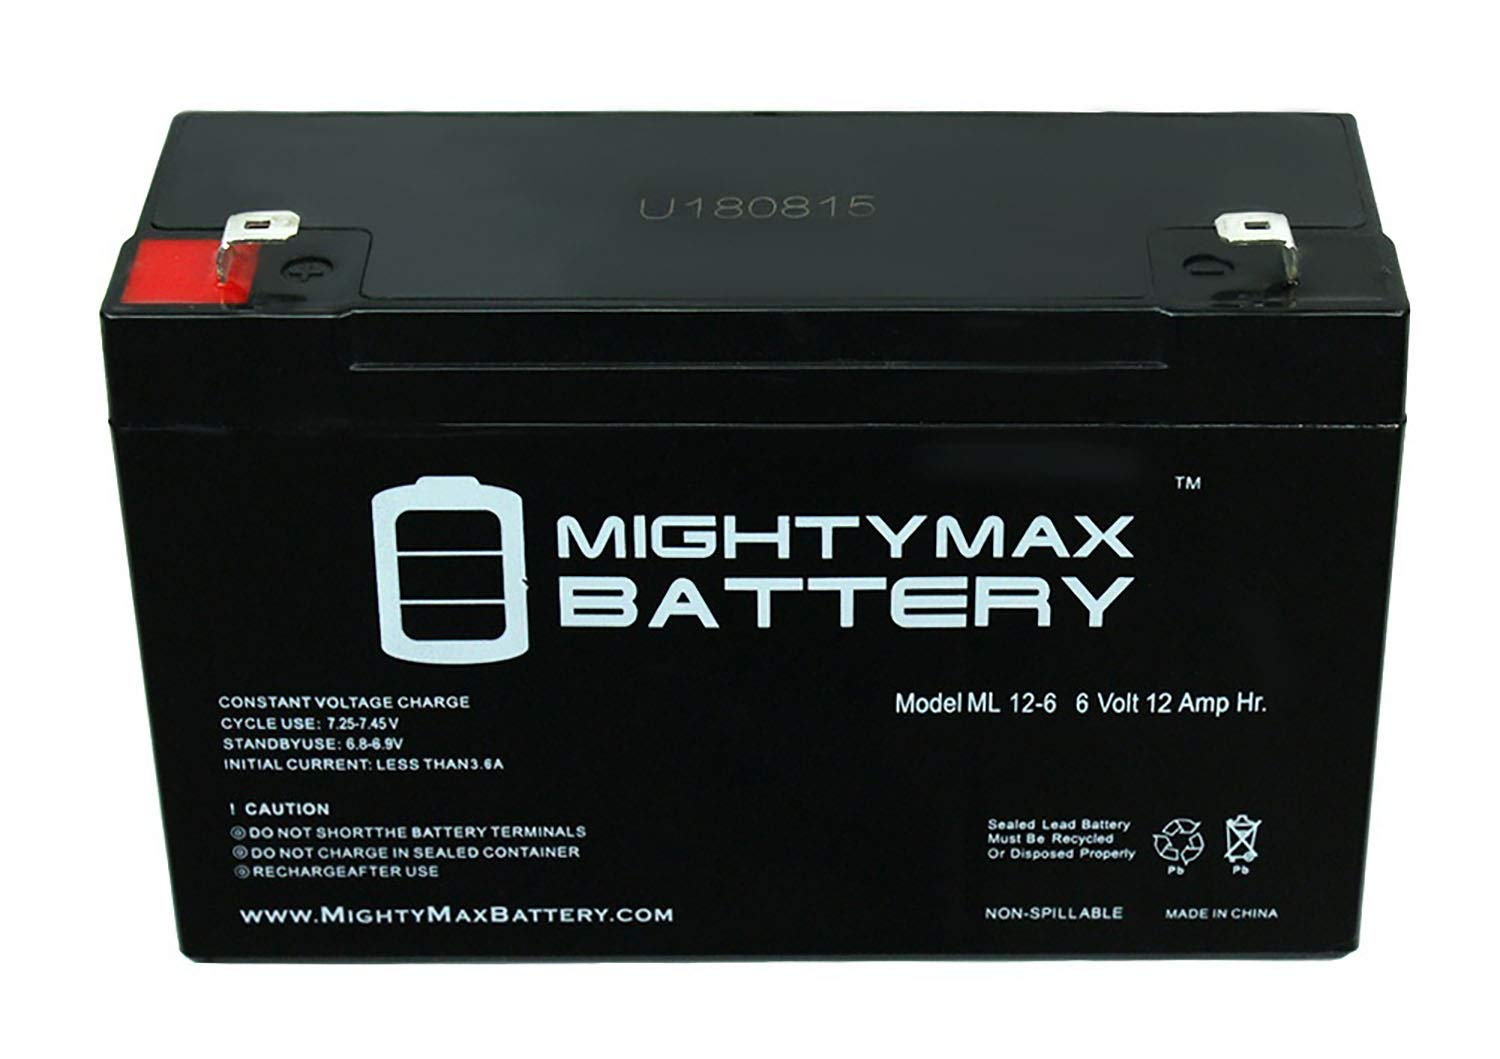 Mighty Max Battery 6V 12AH F2 SLA Replacement Battery for Vision CP6100 CP6100D Brand Product